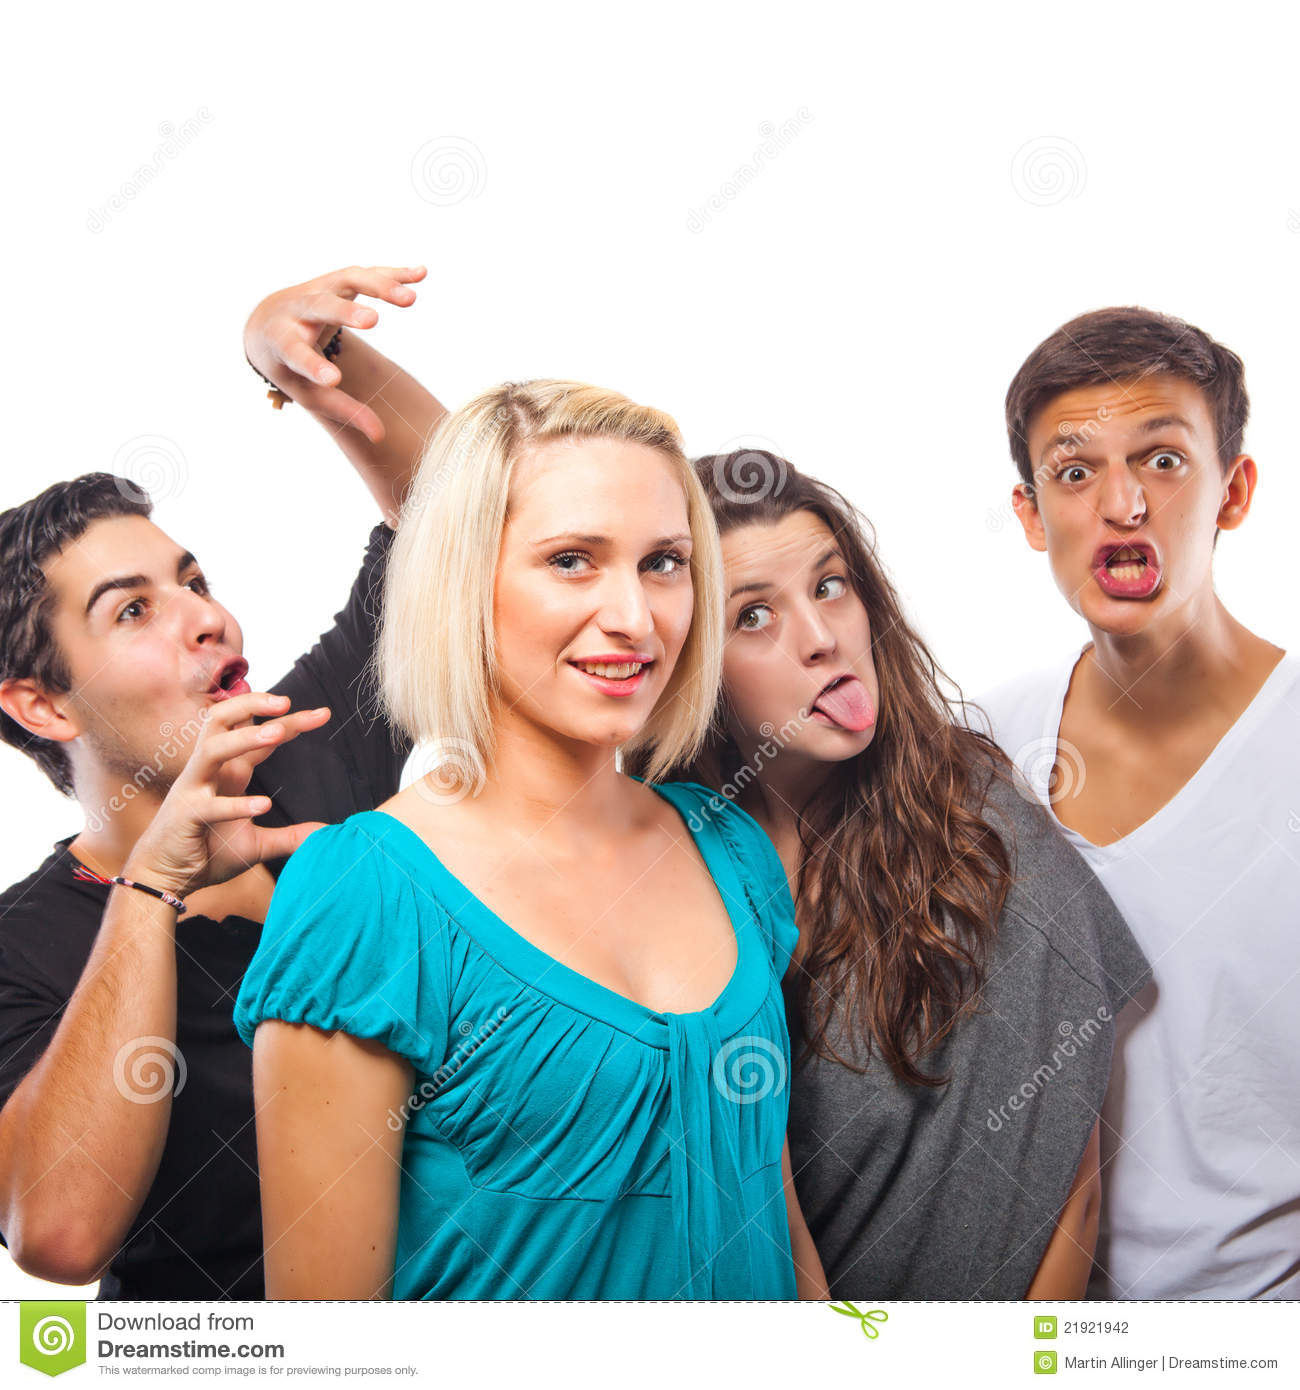 Humourus Funny Group Stock Photo. Image Of Around